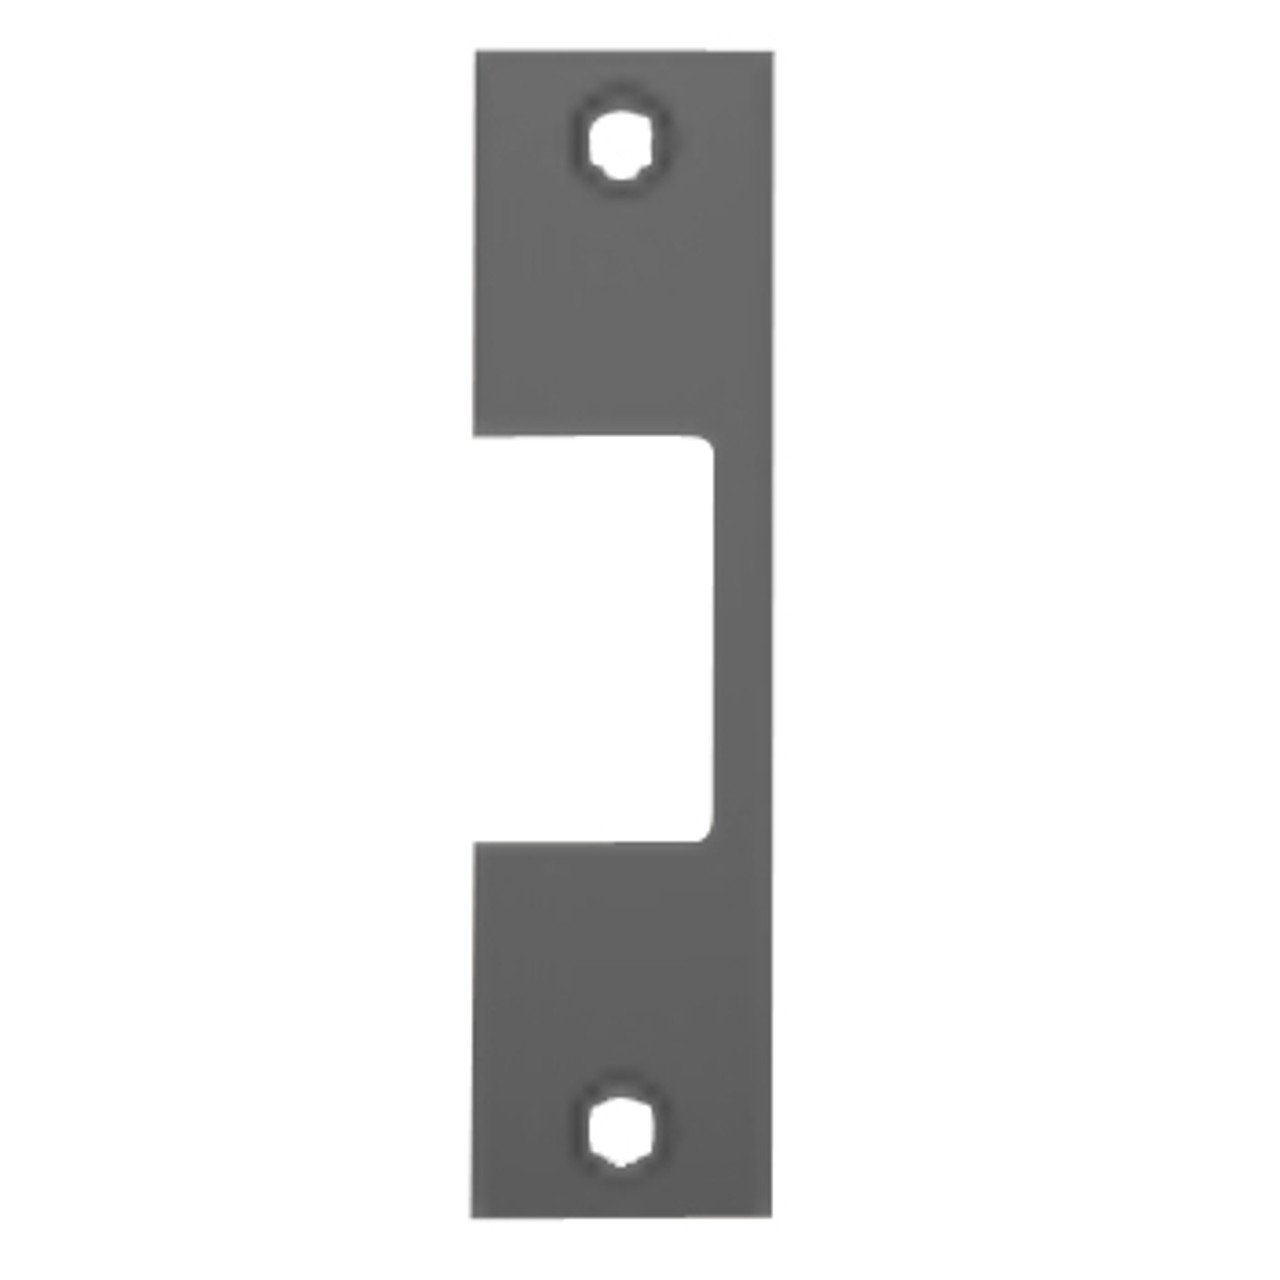 """Z-BLK Hes 4-7/8"""" x 1-1/4"""" Faceplate in Black Finish"""